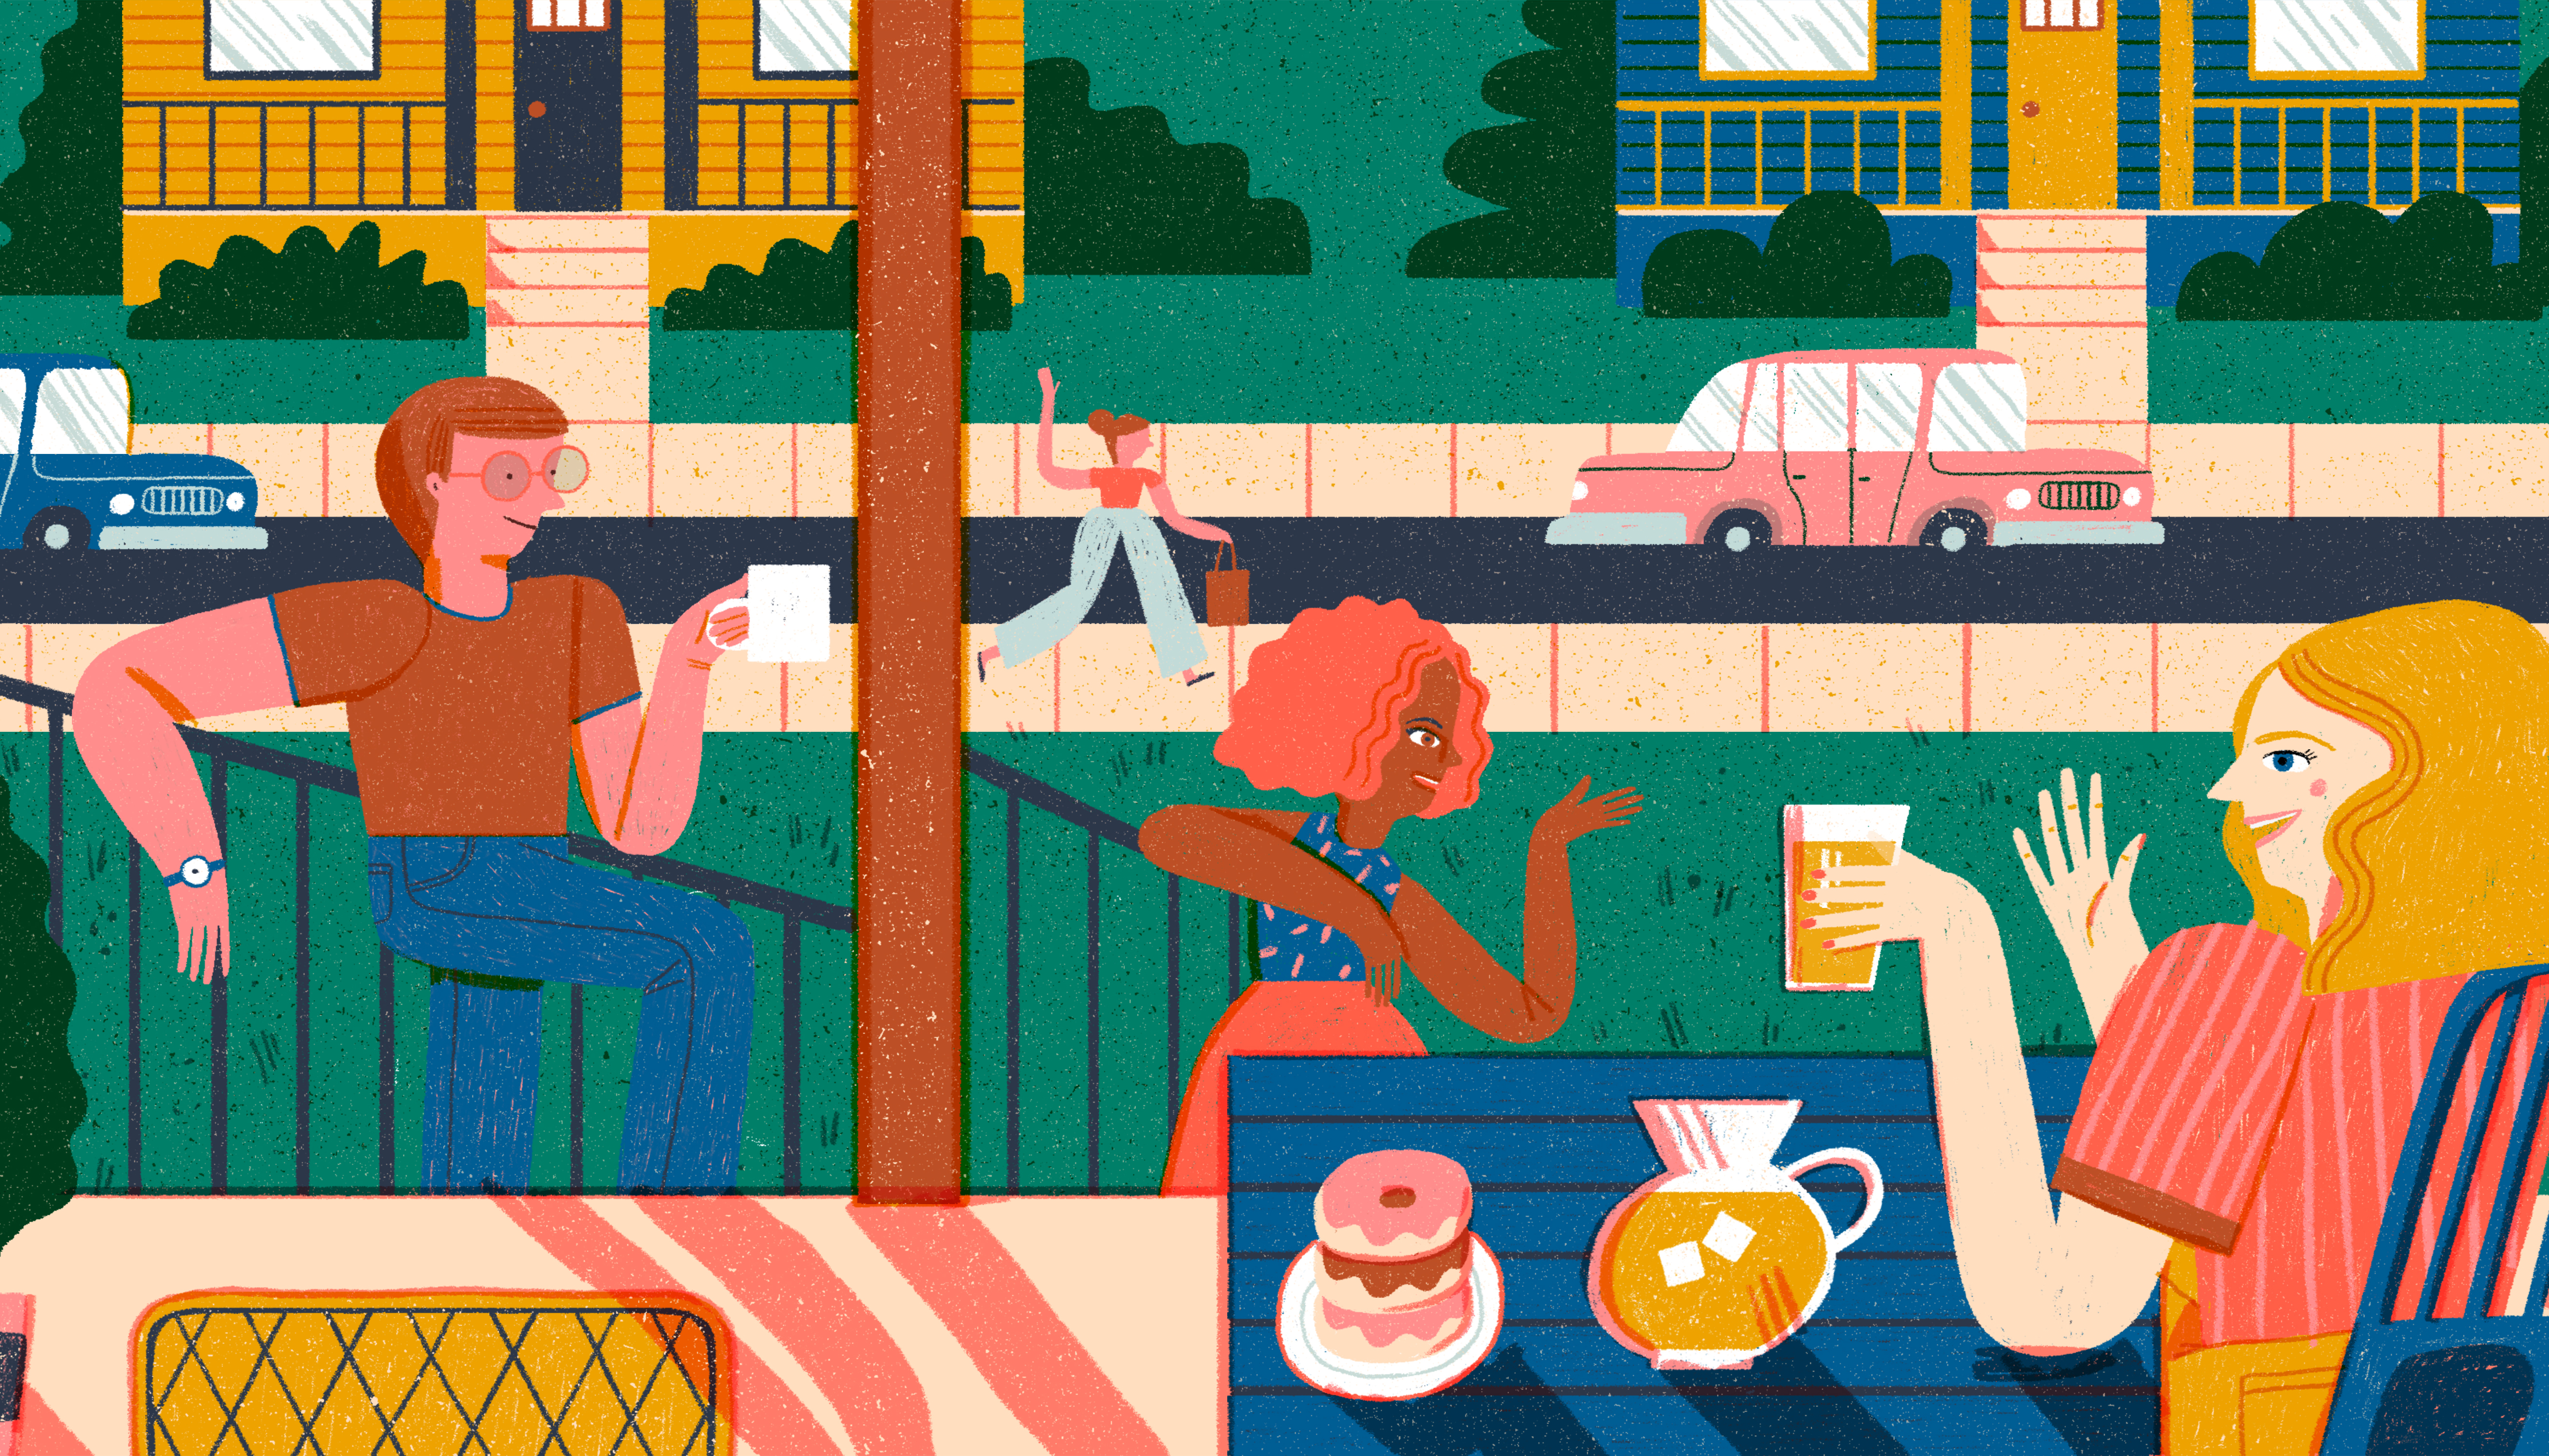 A view from a porch looking onto a neighborhood street. A woman sitting on the porch at a blue table waves with a cup of lemonade in her hand and sweet treats on the table in front of her. Two neighbors casually lean on the stairs of the porch chatting with her. A person across the street is waving. Illustration.